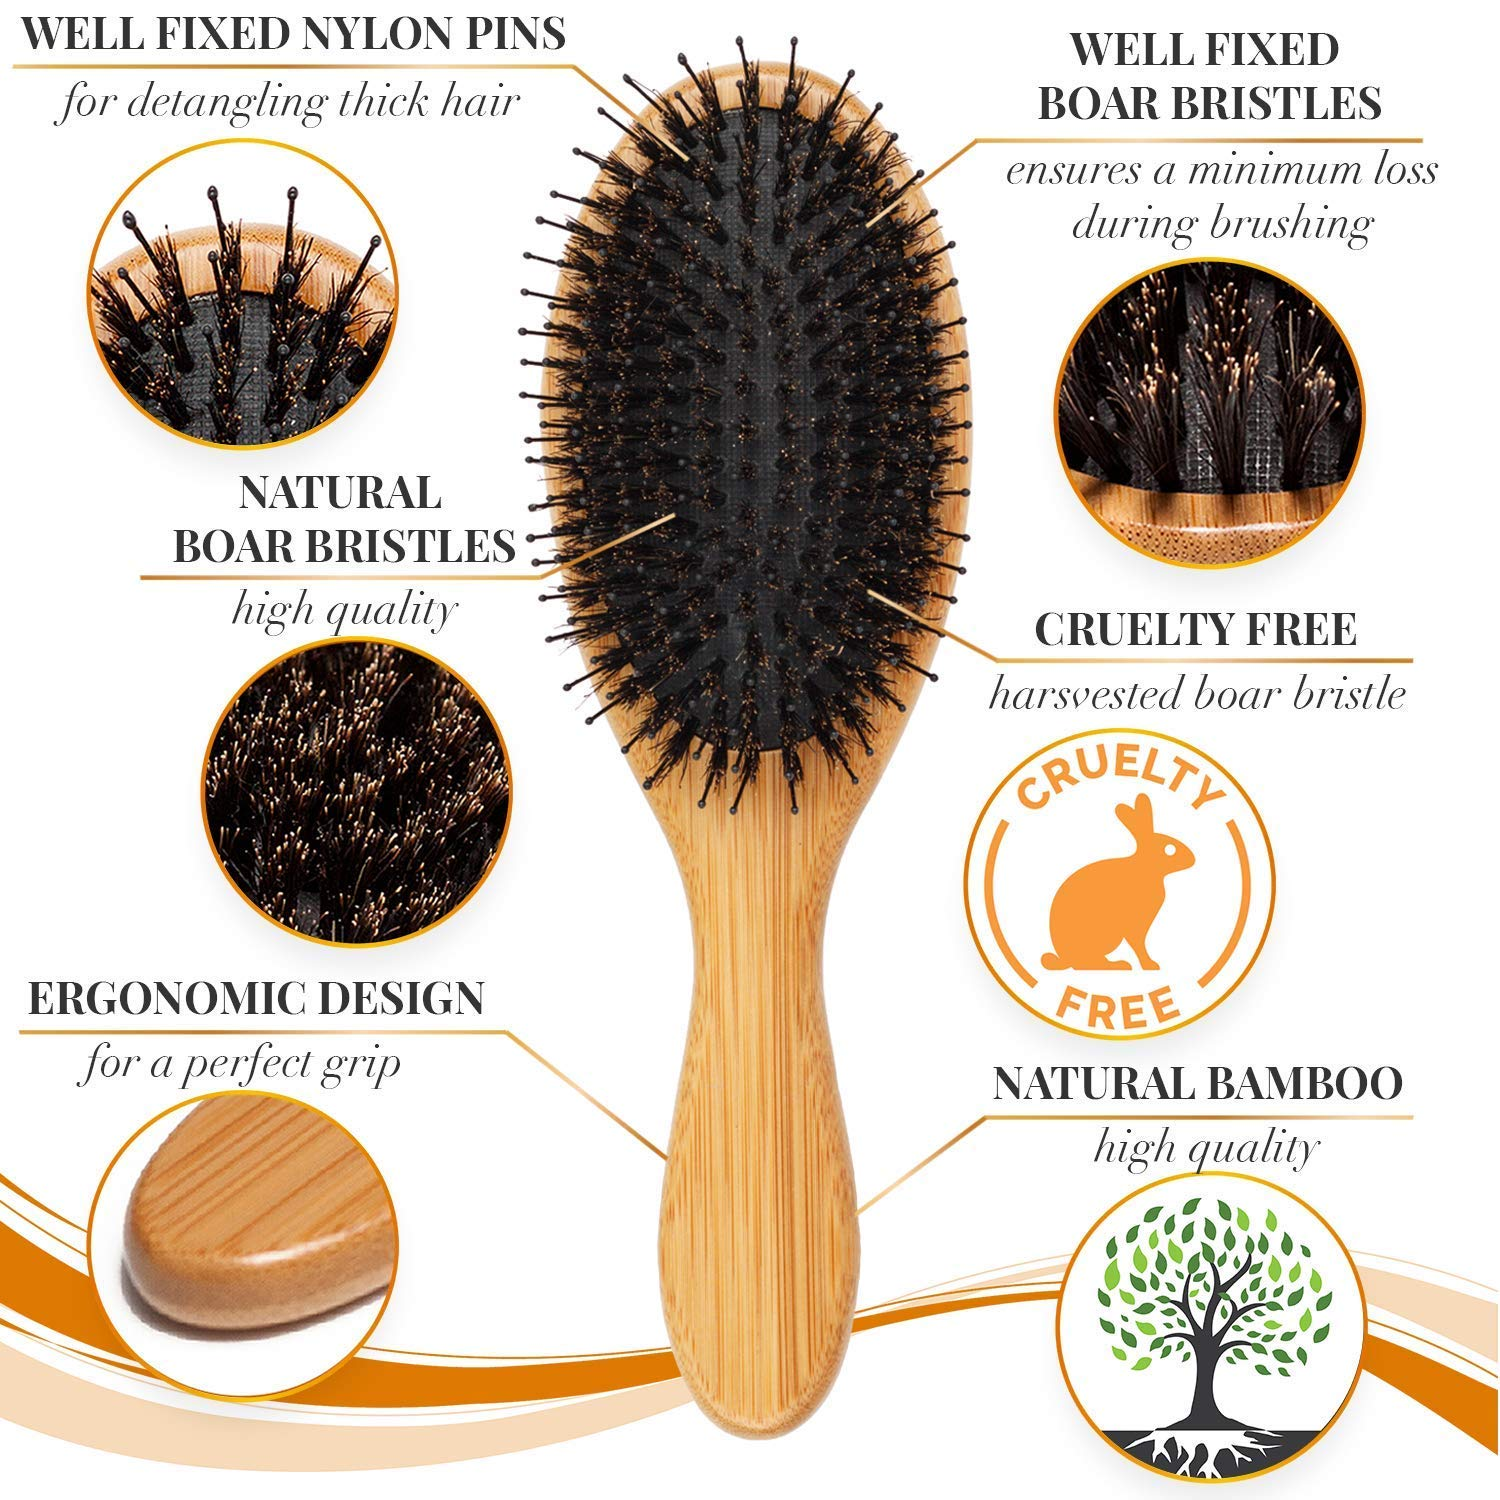 Wooden handled hair brush